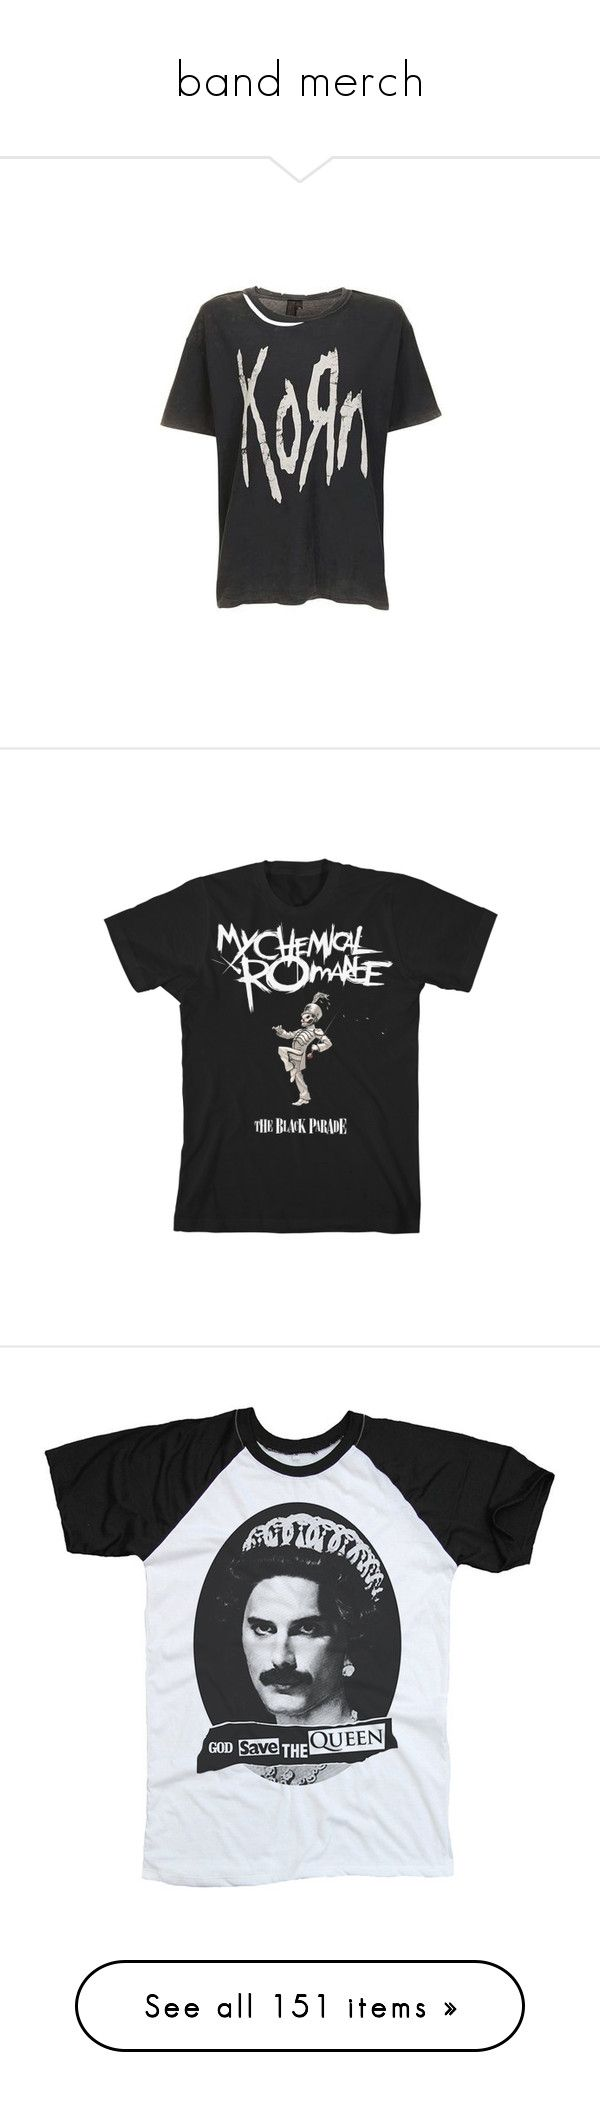 """""""band merch"""" by xluvaii ❤ liked on Polyvore featuring men's fashion, men's clothing, men's shirts, men's t-shirts, tops, shirts, mens flower shirt, mens white shirts, mens white t shirts and mens t shirts"""